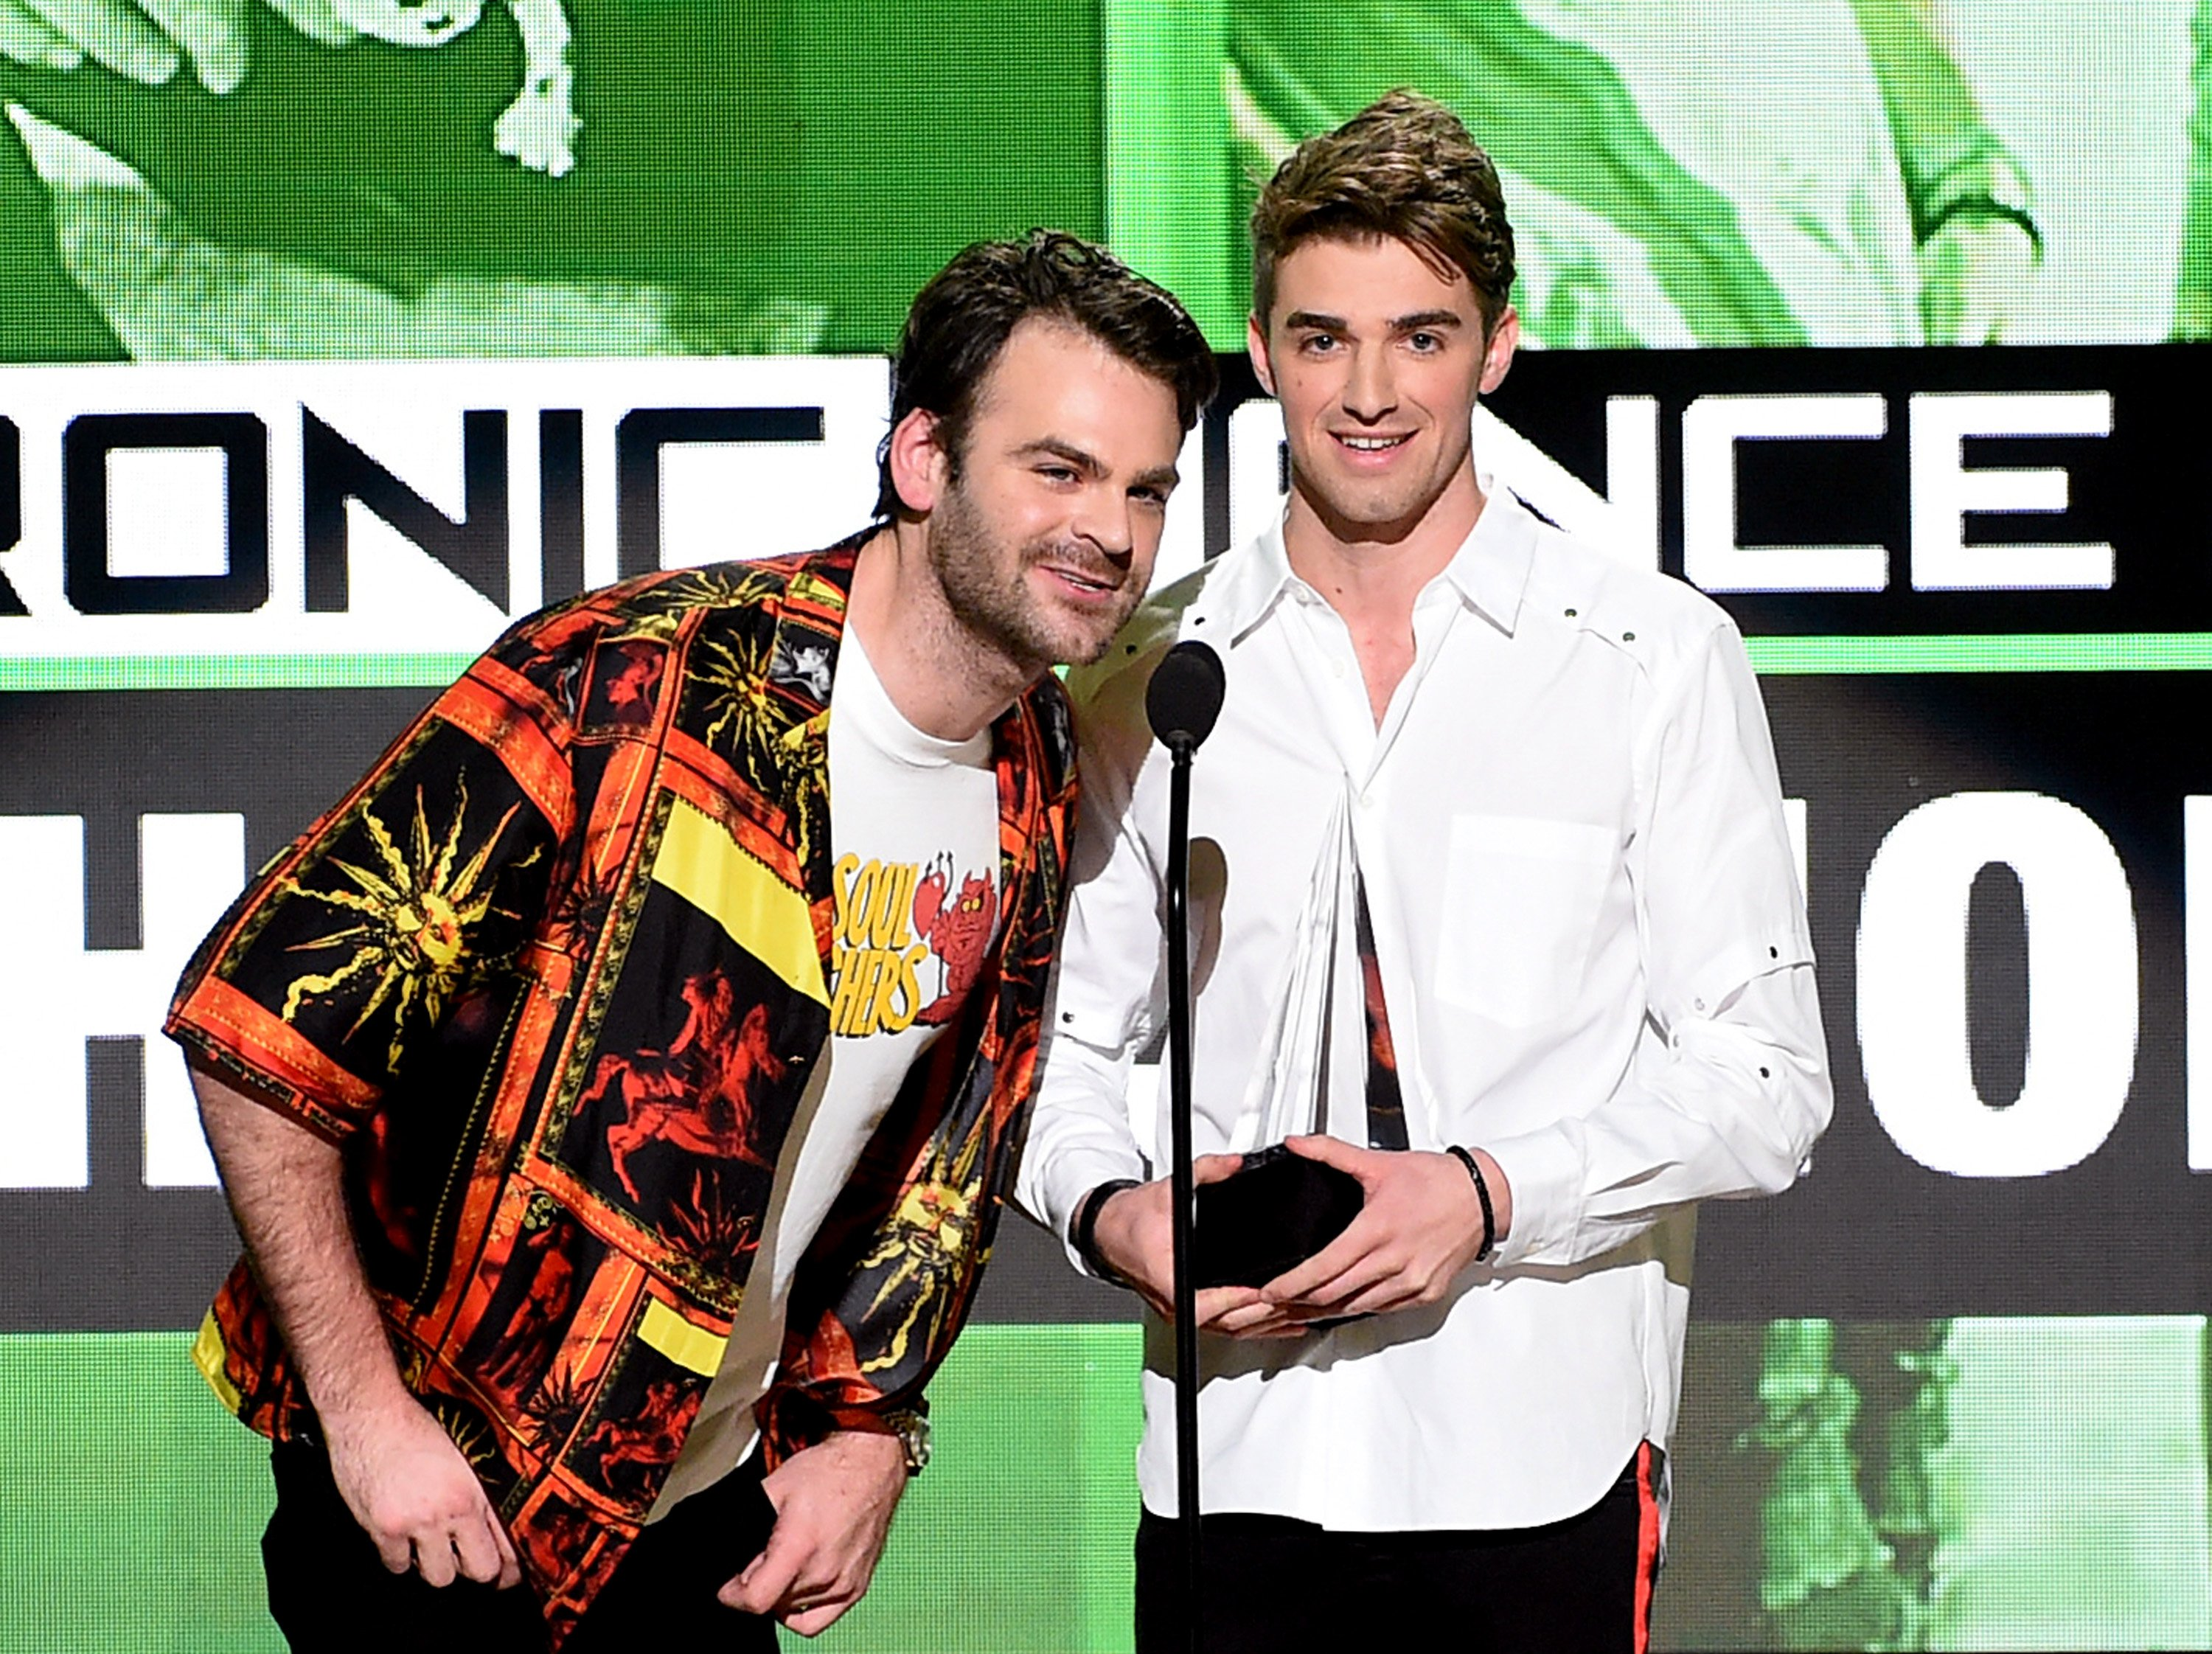 Alex Pall and Drew Taggart of The Chainsmokers accept Favorite EDM Artist onstage during the 2016 American Music Awards at Microsoft Theater on November 20, 2016 in Los Angeles